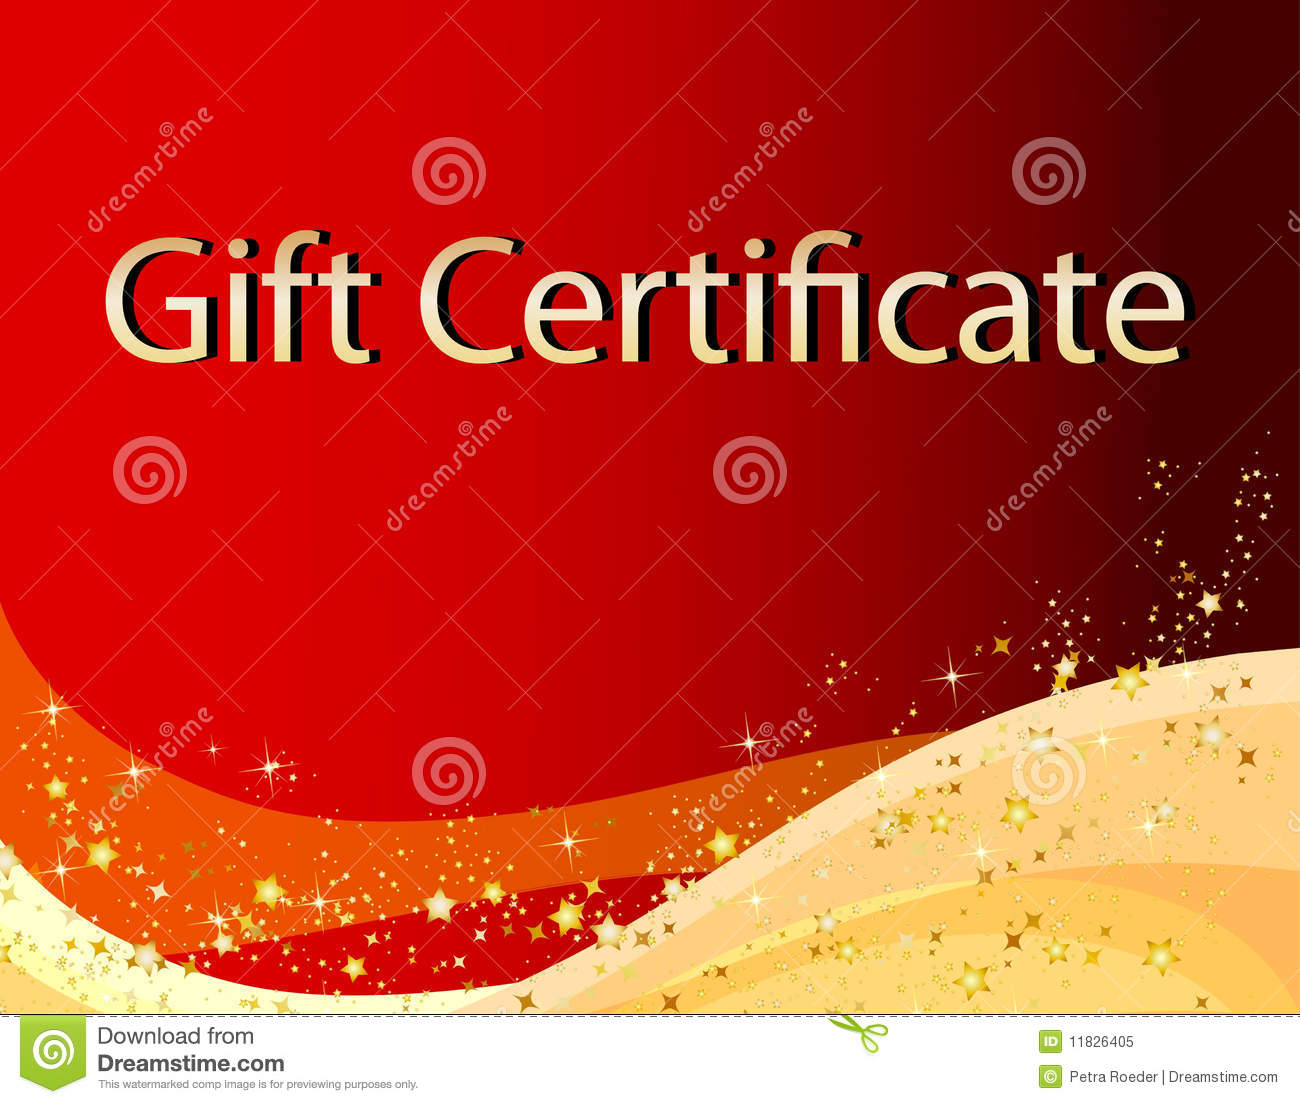 Blank Christmas Gift Certificate Red christmas gift certificate